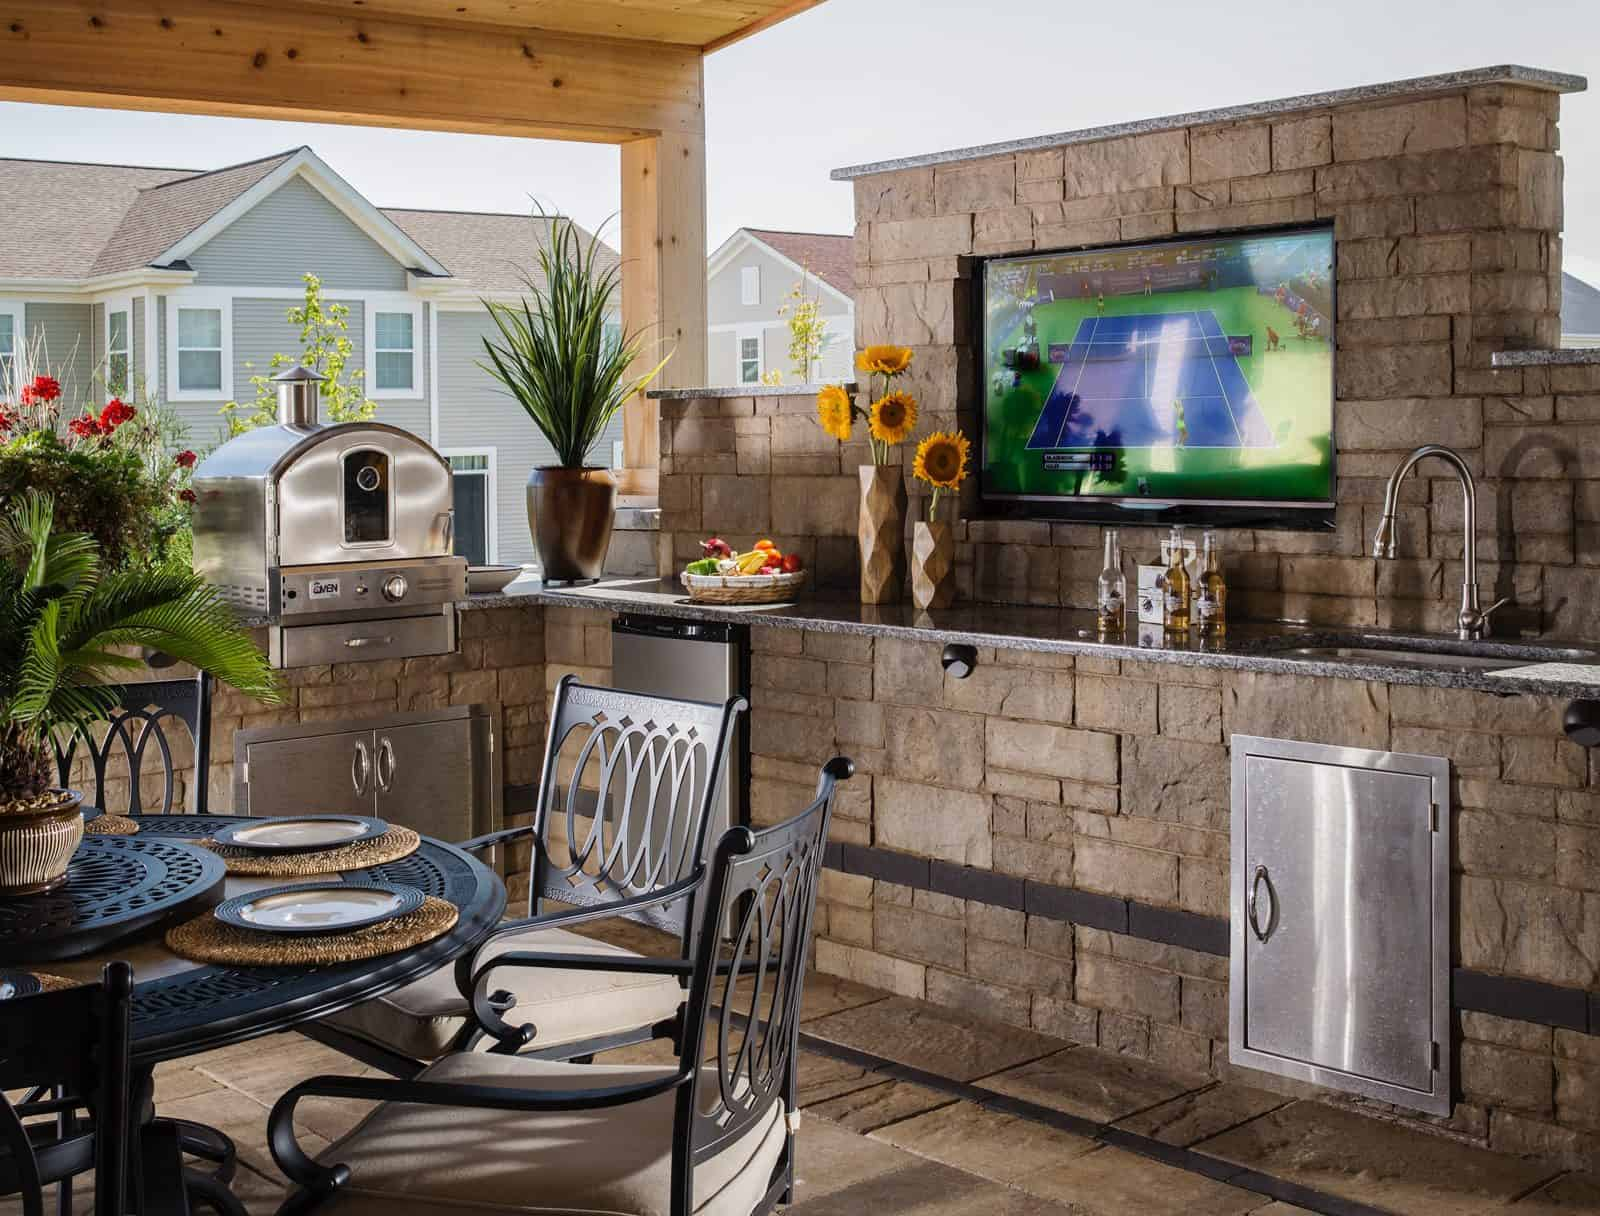 Outdoor kitchen ideas that will make you drool for Rustic outdoor kitchen ideas